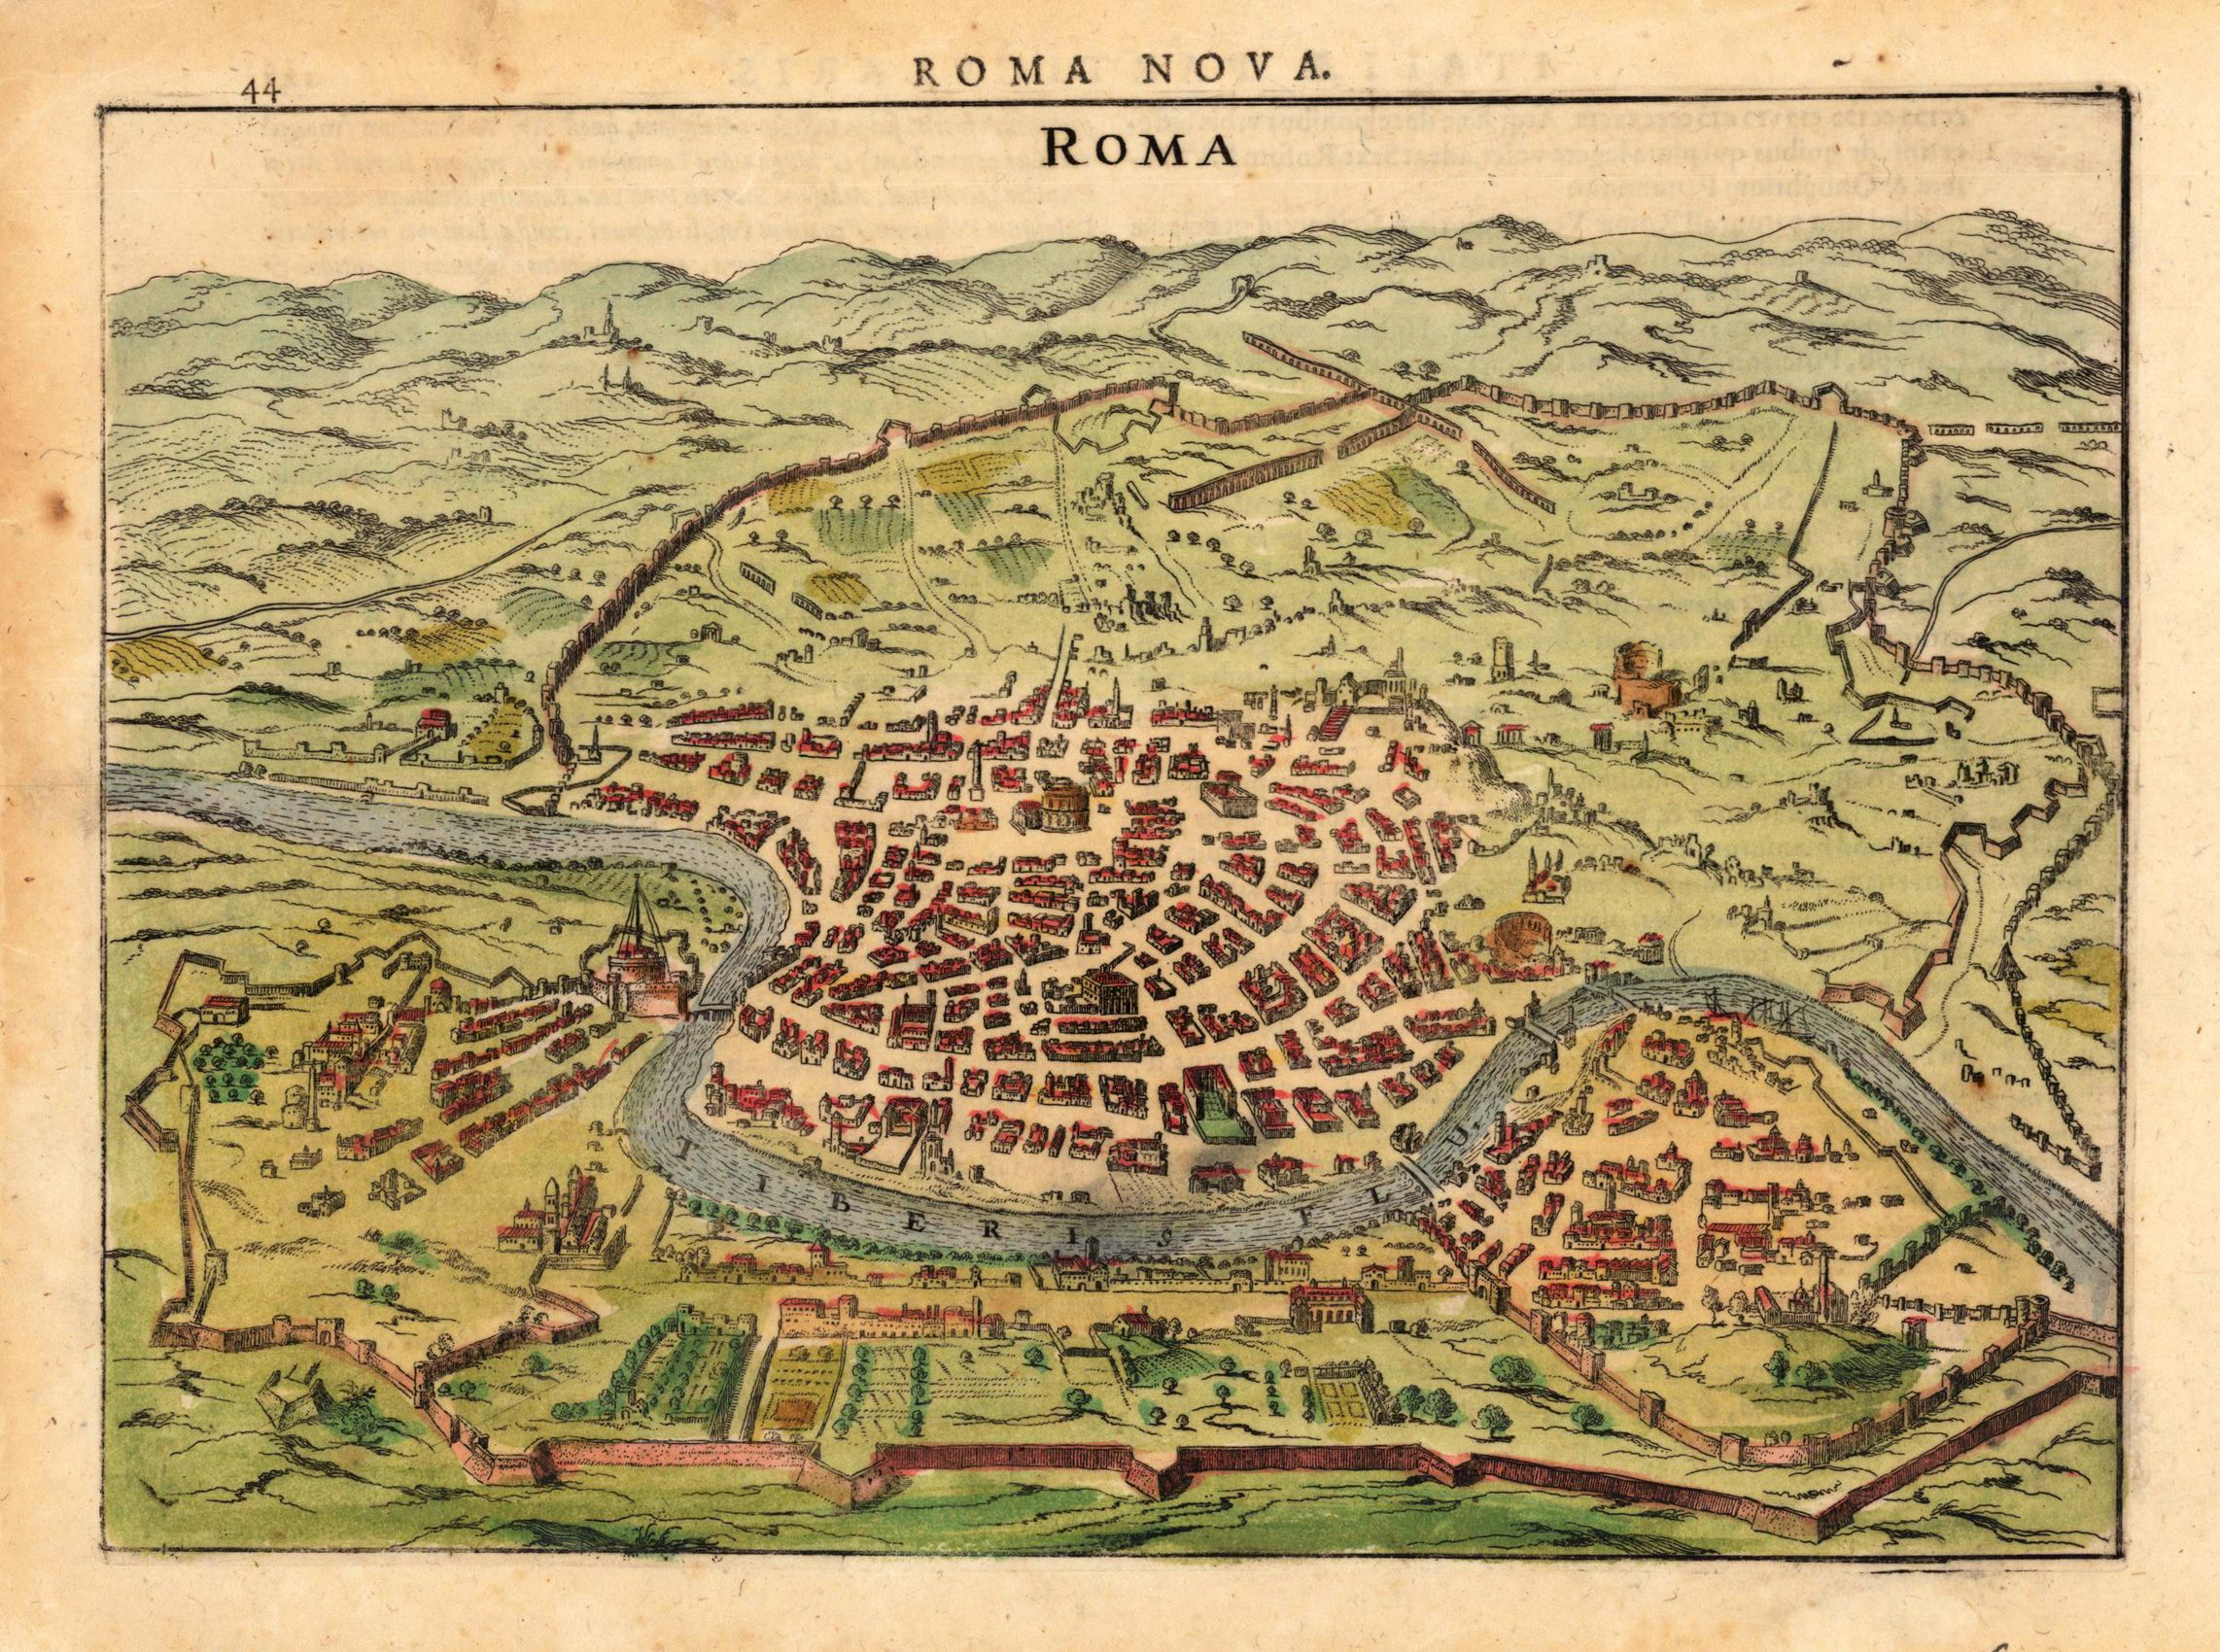 A Renaissance map of Rome with the